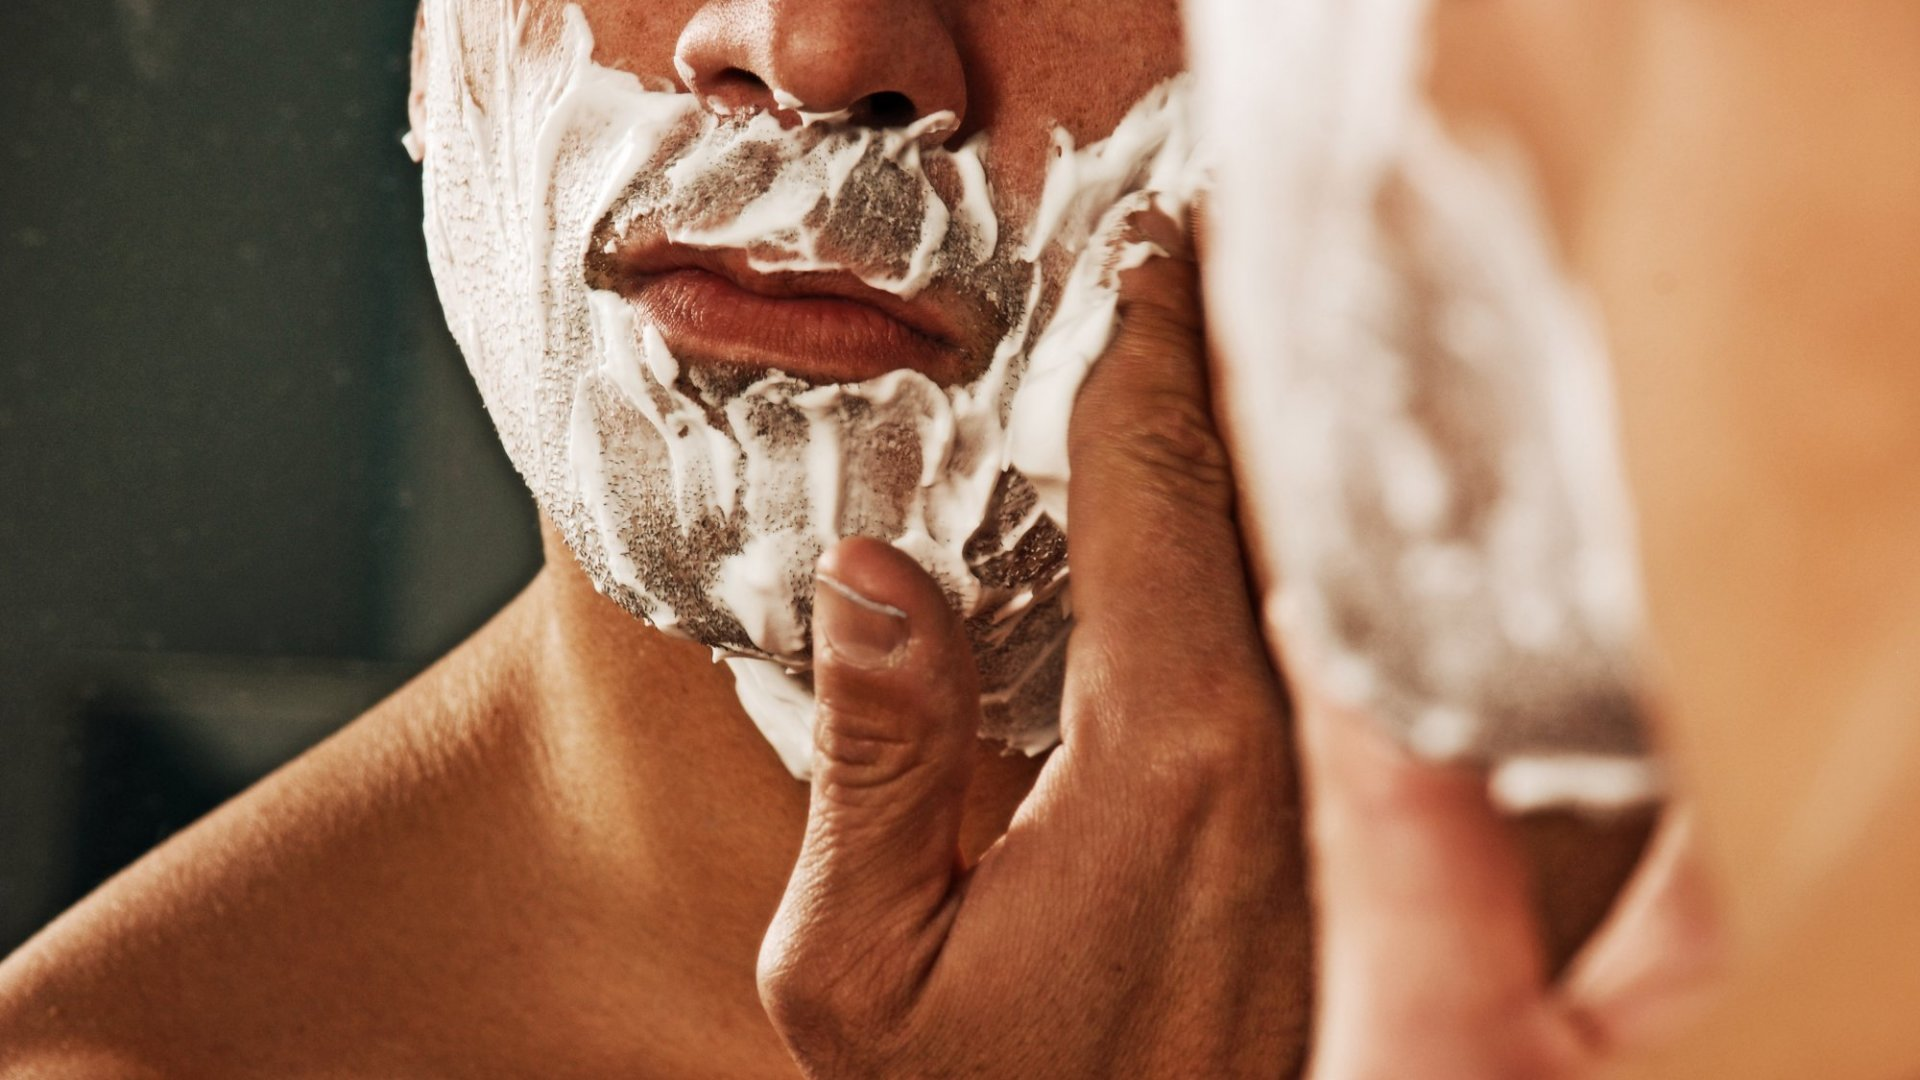 Gillette's Latest Ad Mentions Nothing About Shaving. Here's Why It's Working.